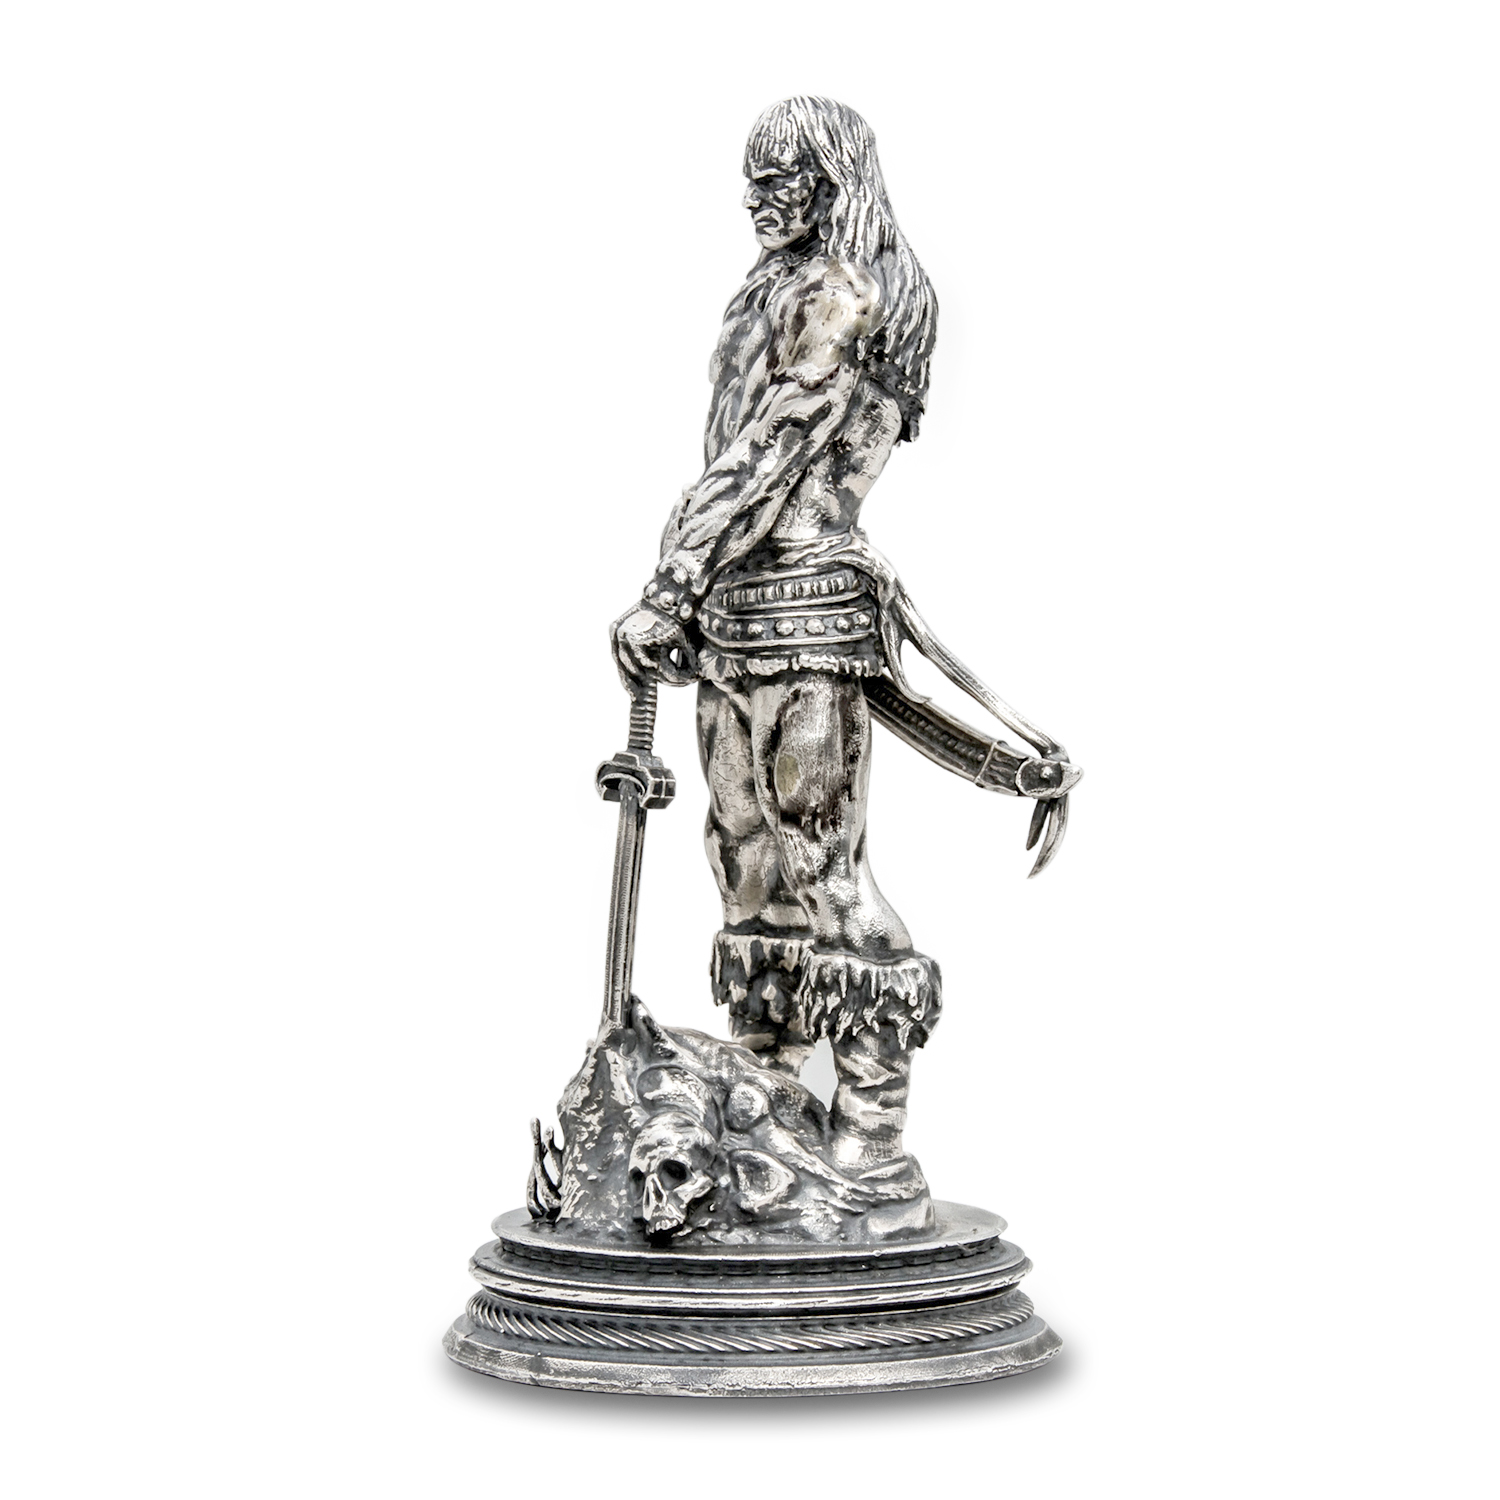 6 oz Silver Antique Statue - Frank Frazetta (The Barbarian)